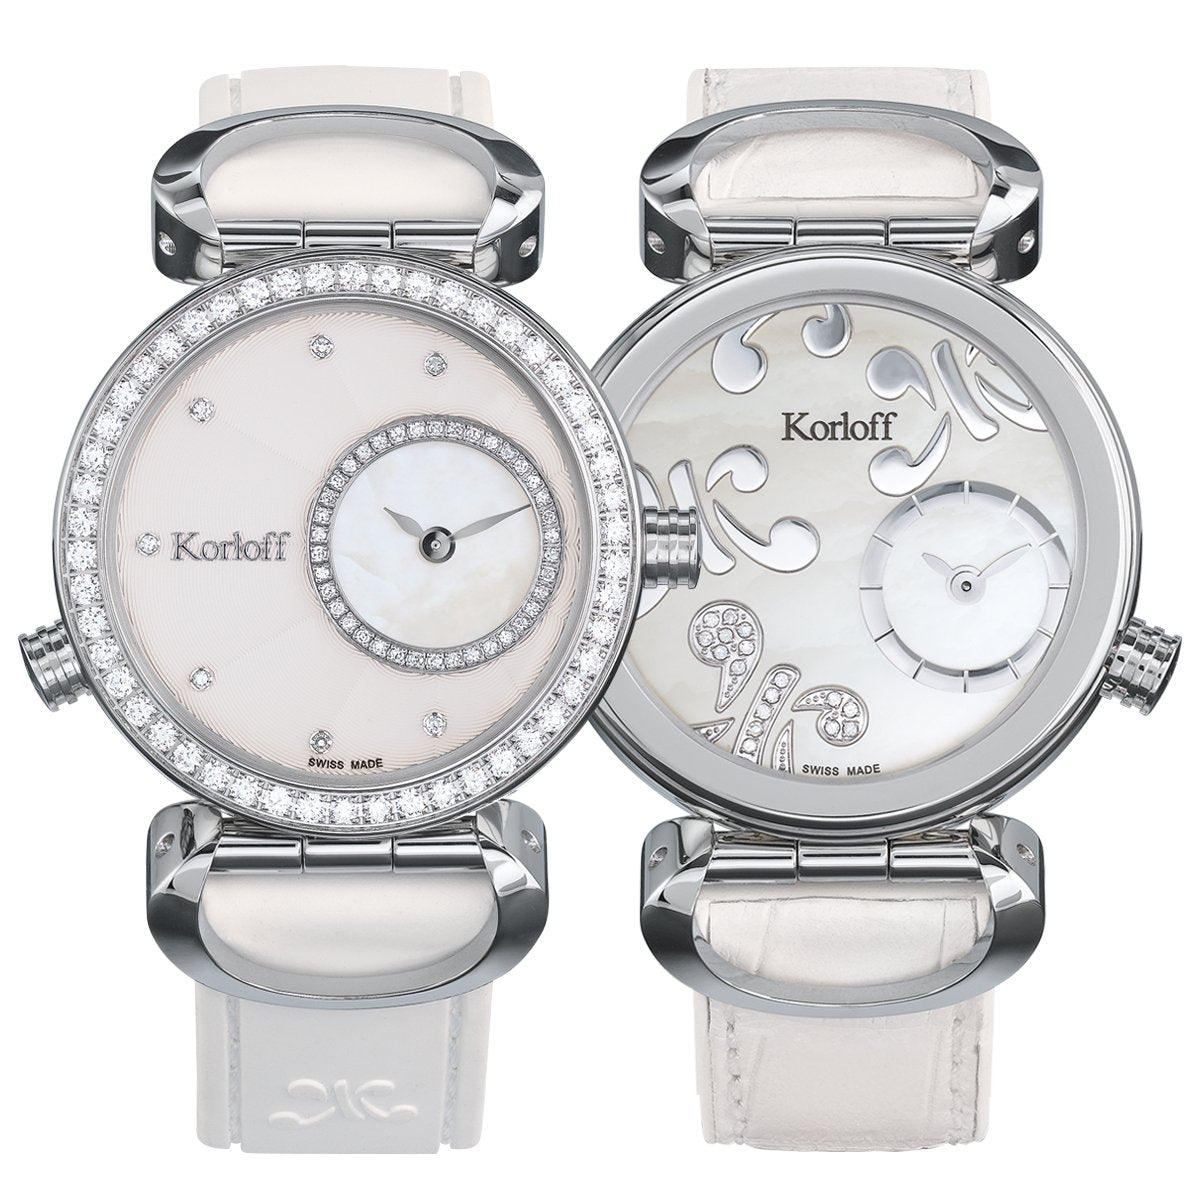 Korloff Cassiopee Reversible Diamond - Watches & Crystals